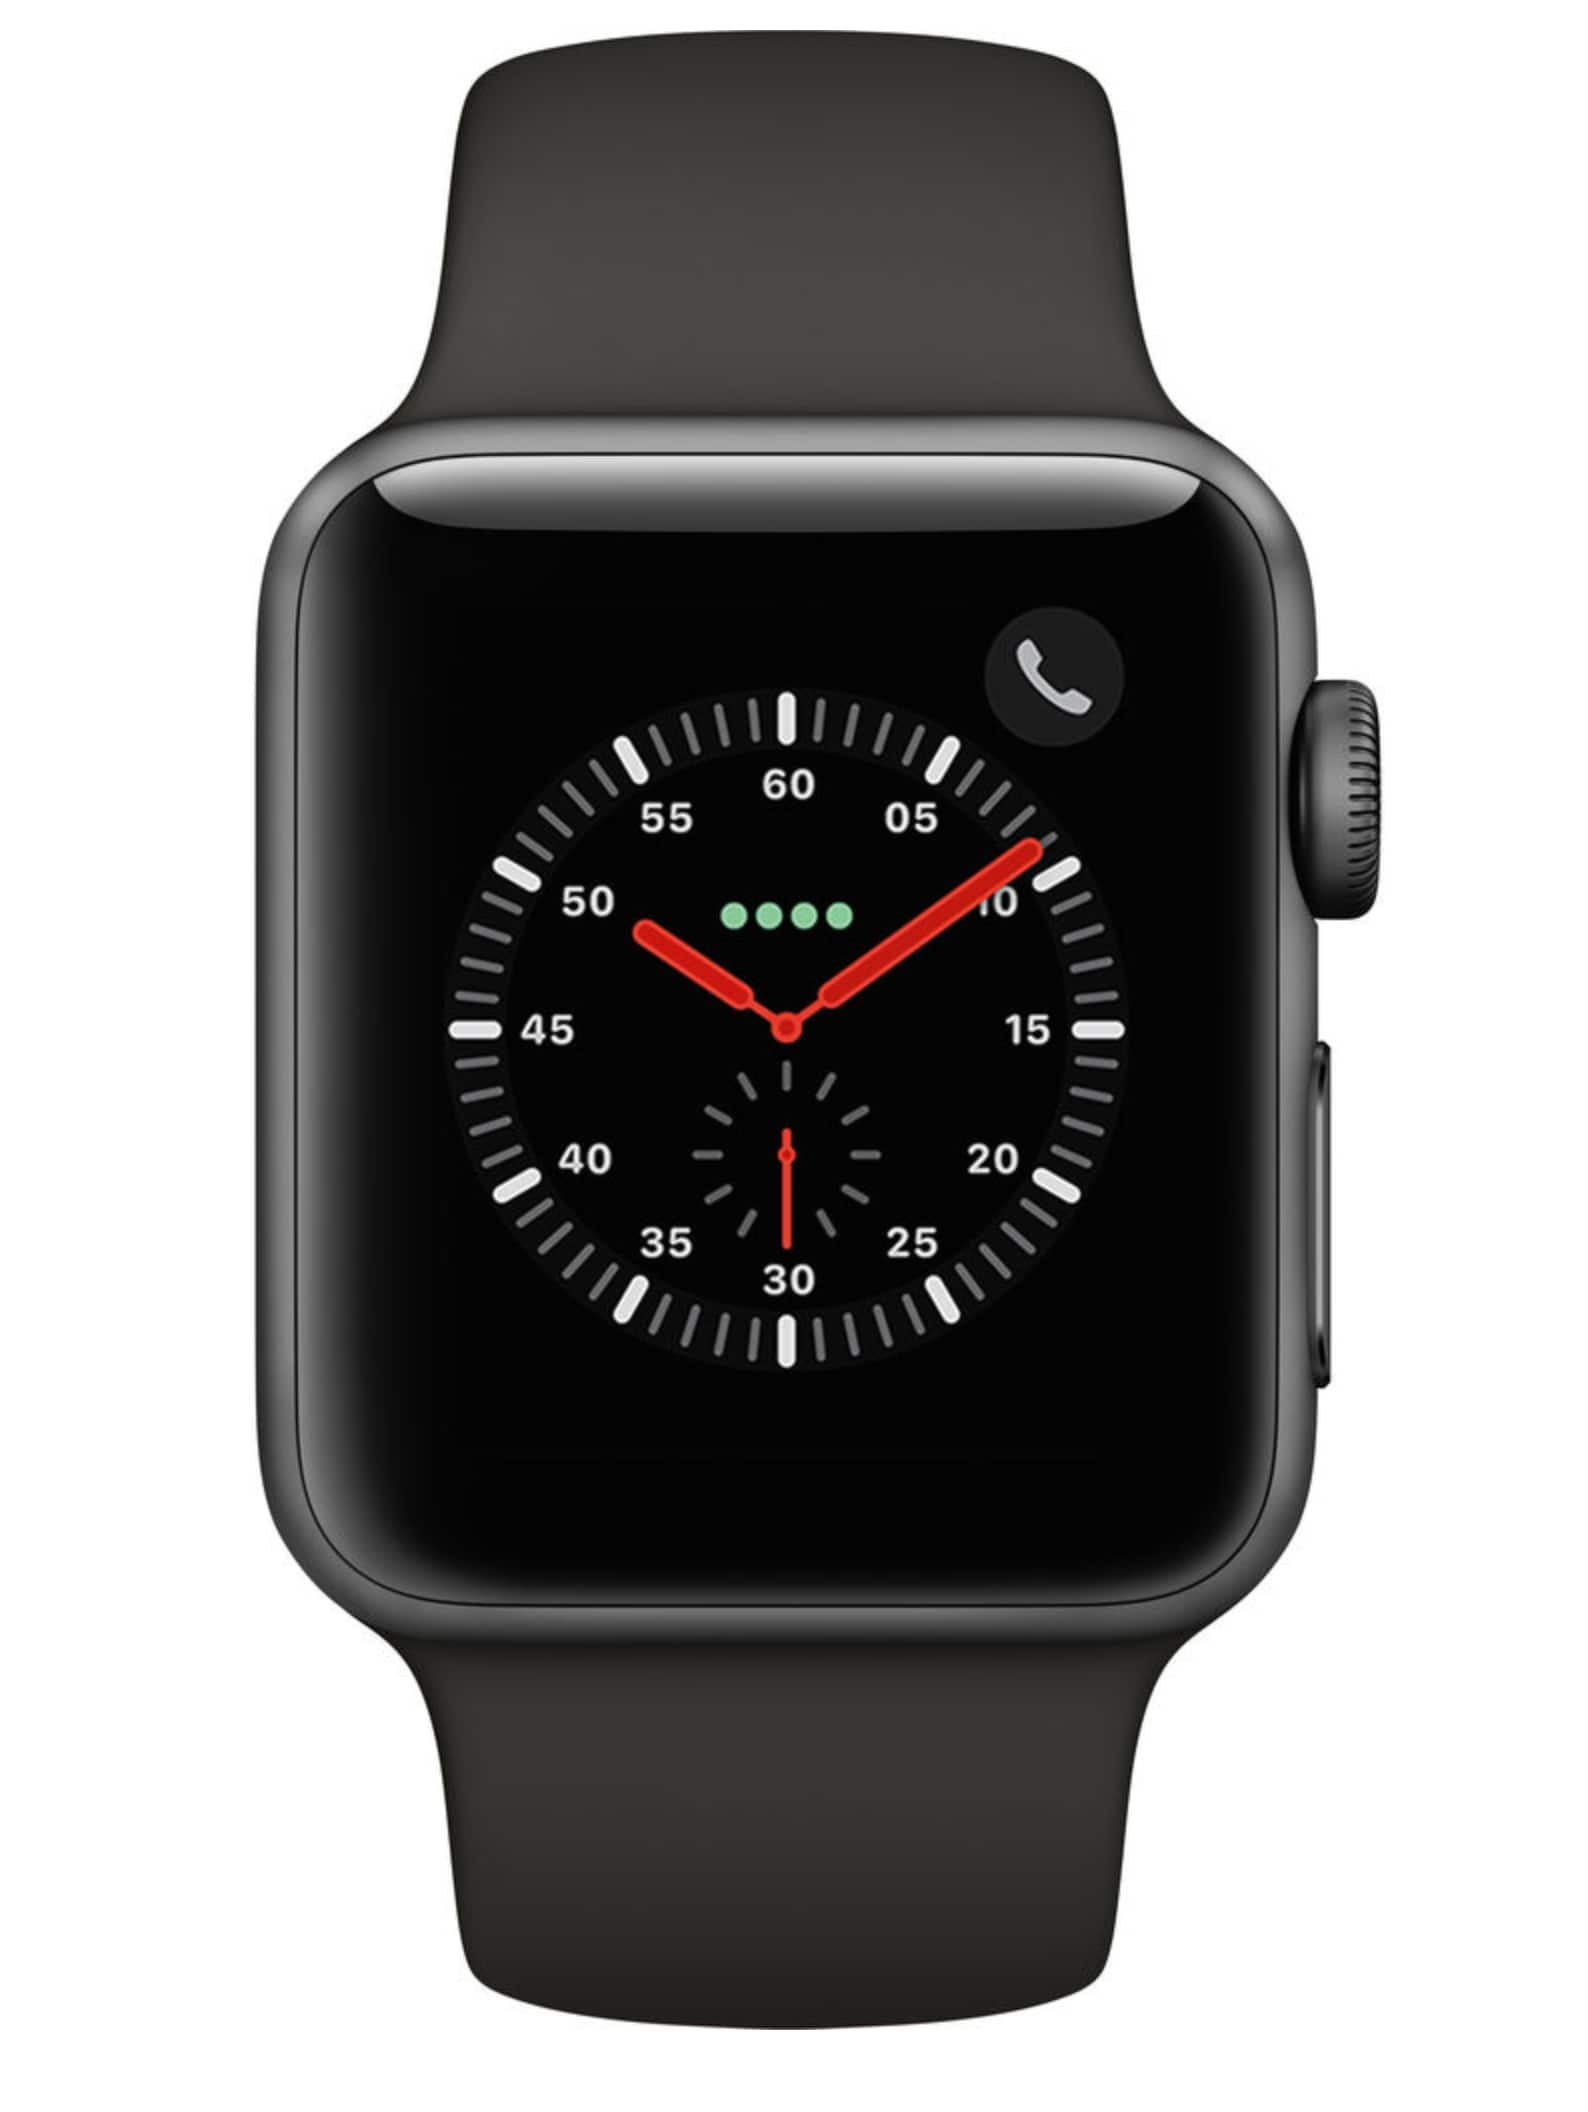 B&H has Apple Watch Series 3 Smartwatch (GPS + Cellular, Space Gray Aluminum Case, Gray Sport Band)  $389 42mm; $361 38mm; after 5% CB via Chase Freedom via Apple Pay.